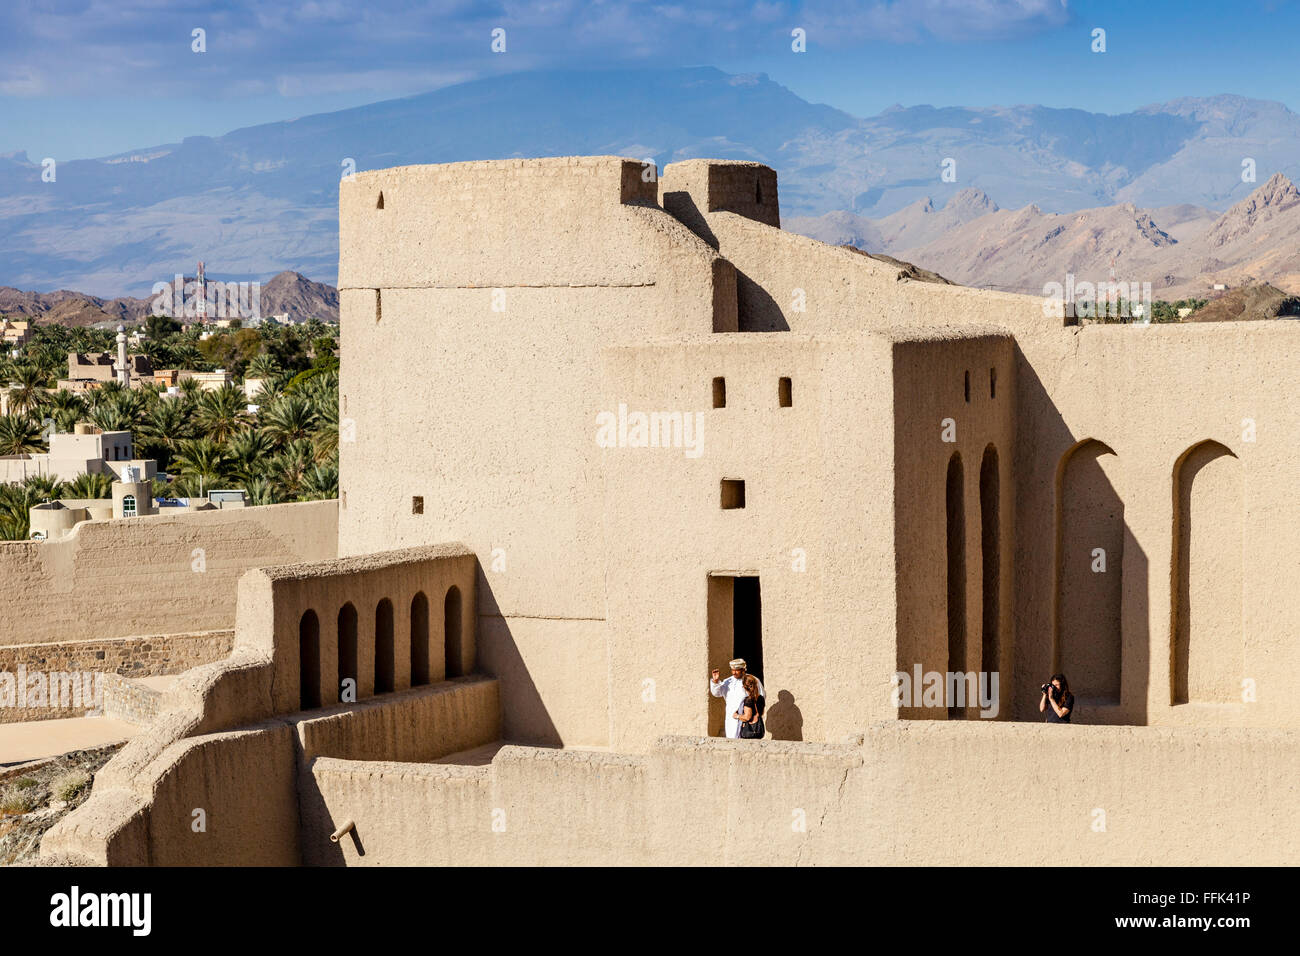 Tourists Visiting Bahla Fort, Ad Dakhiliyah Region, Oman - Stock Image